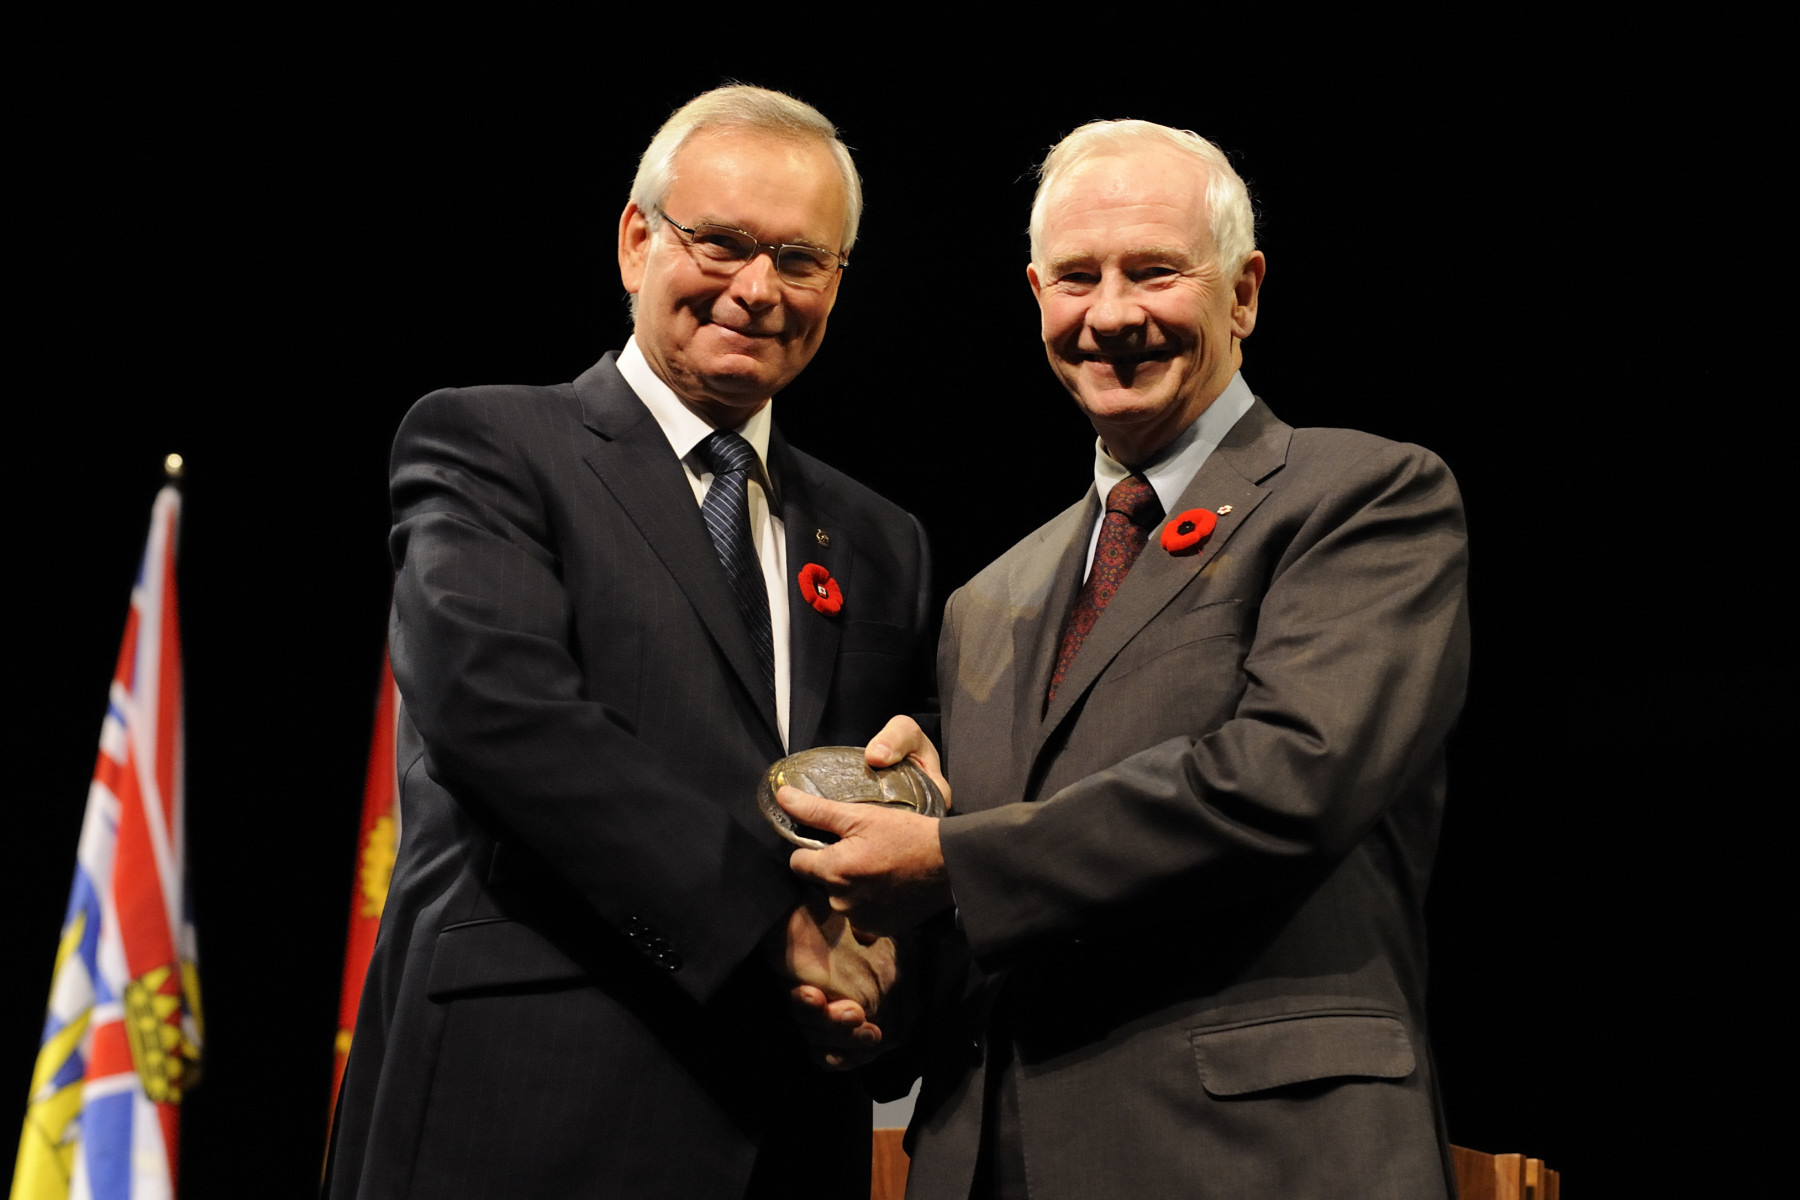 His Excellency received the Confederation Centre of the Arts' Symons Medal from the master of ceremonies Mr. Wayne Hambly.